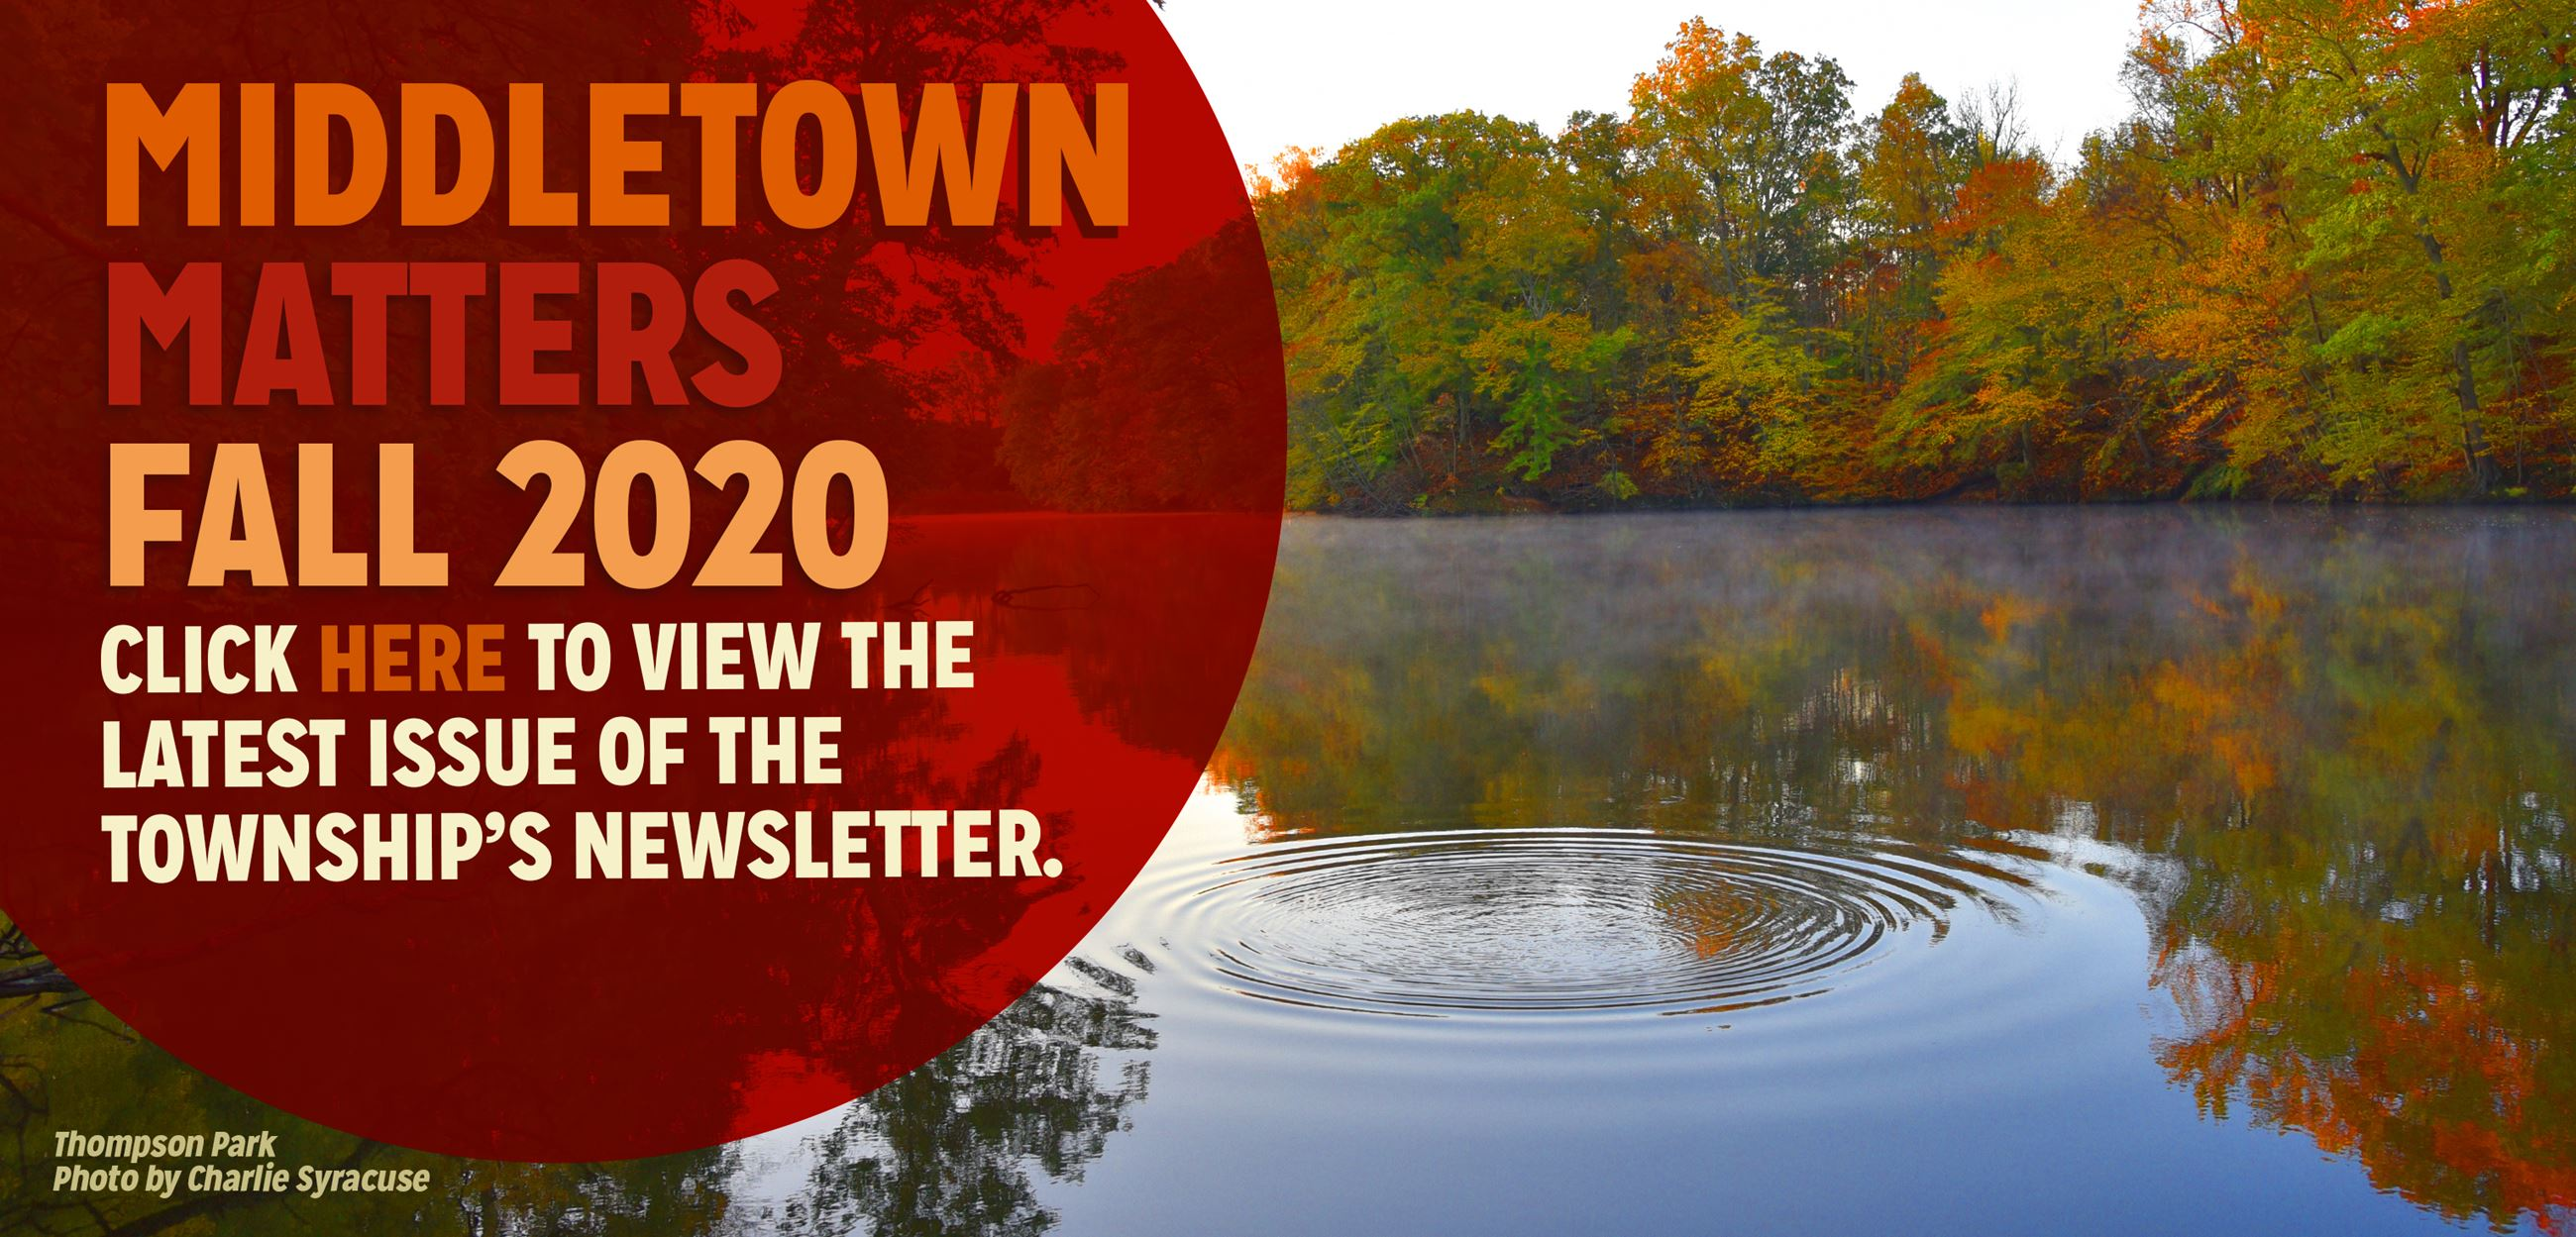 MIDDLETOWN MATTERS FALL 2020 GRAPHIC (00000002)